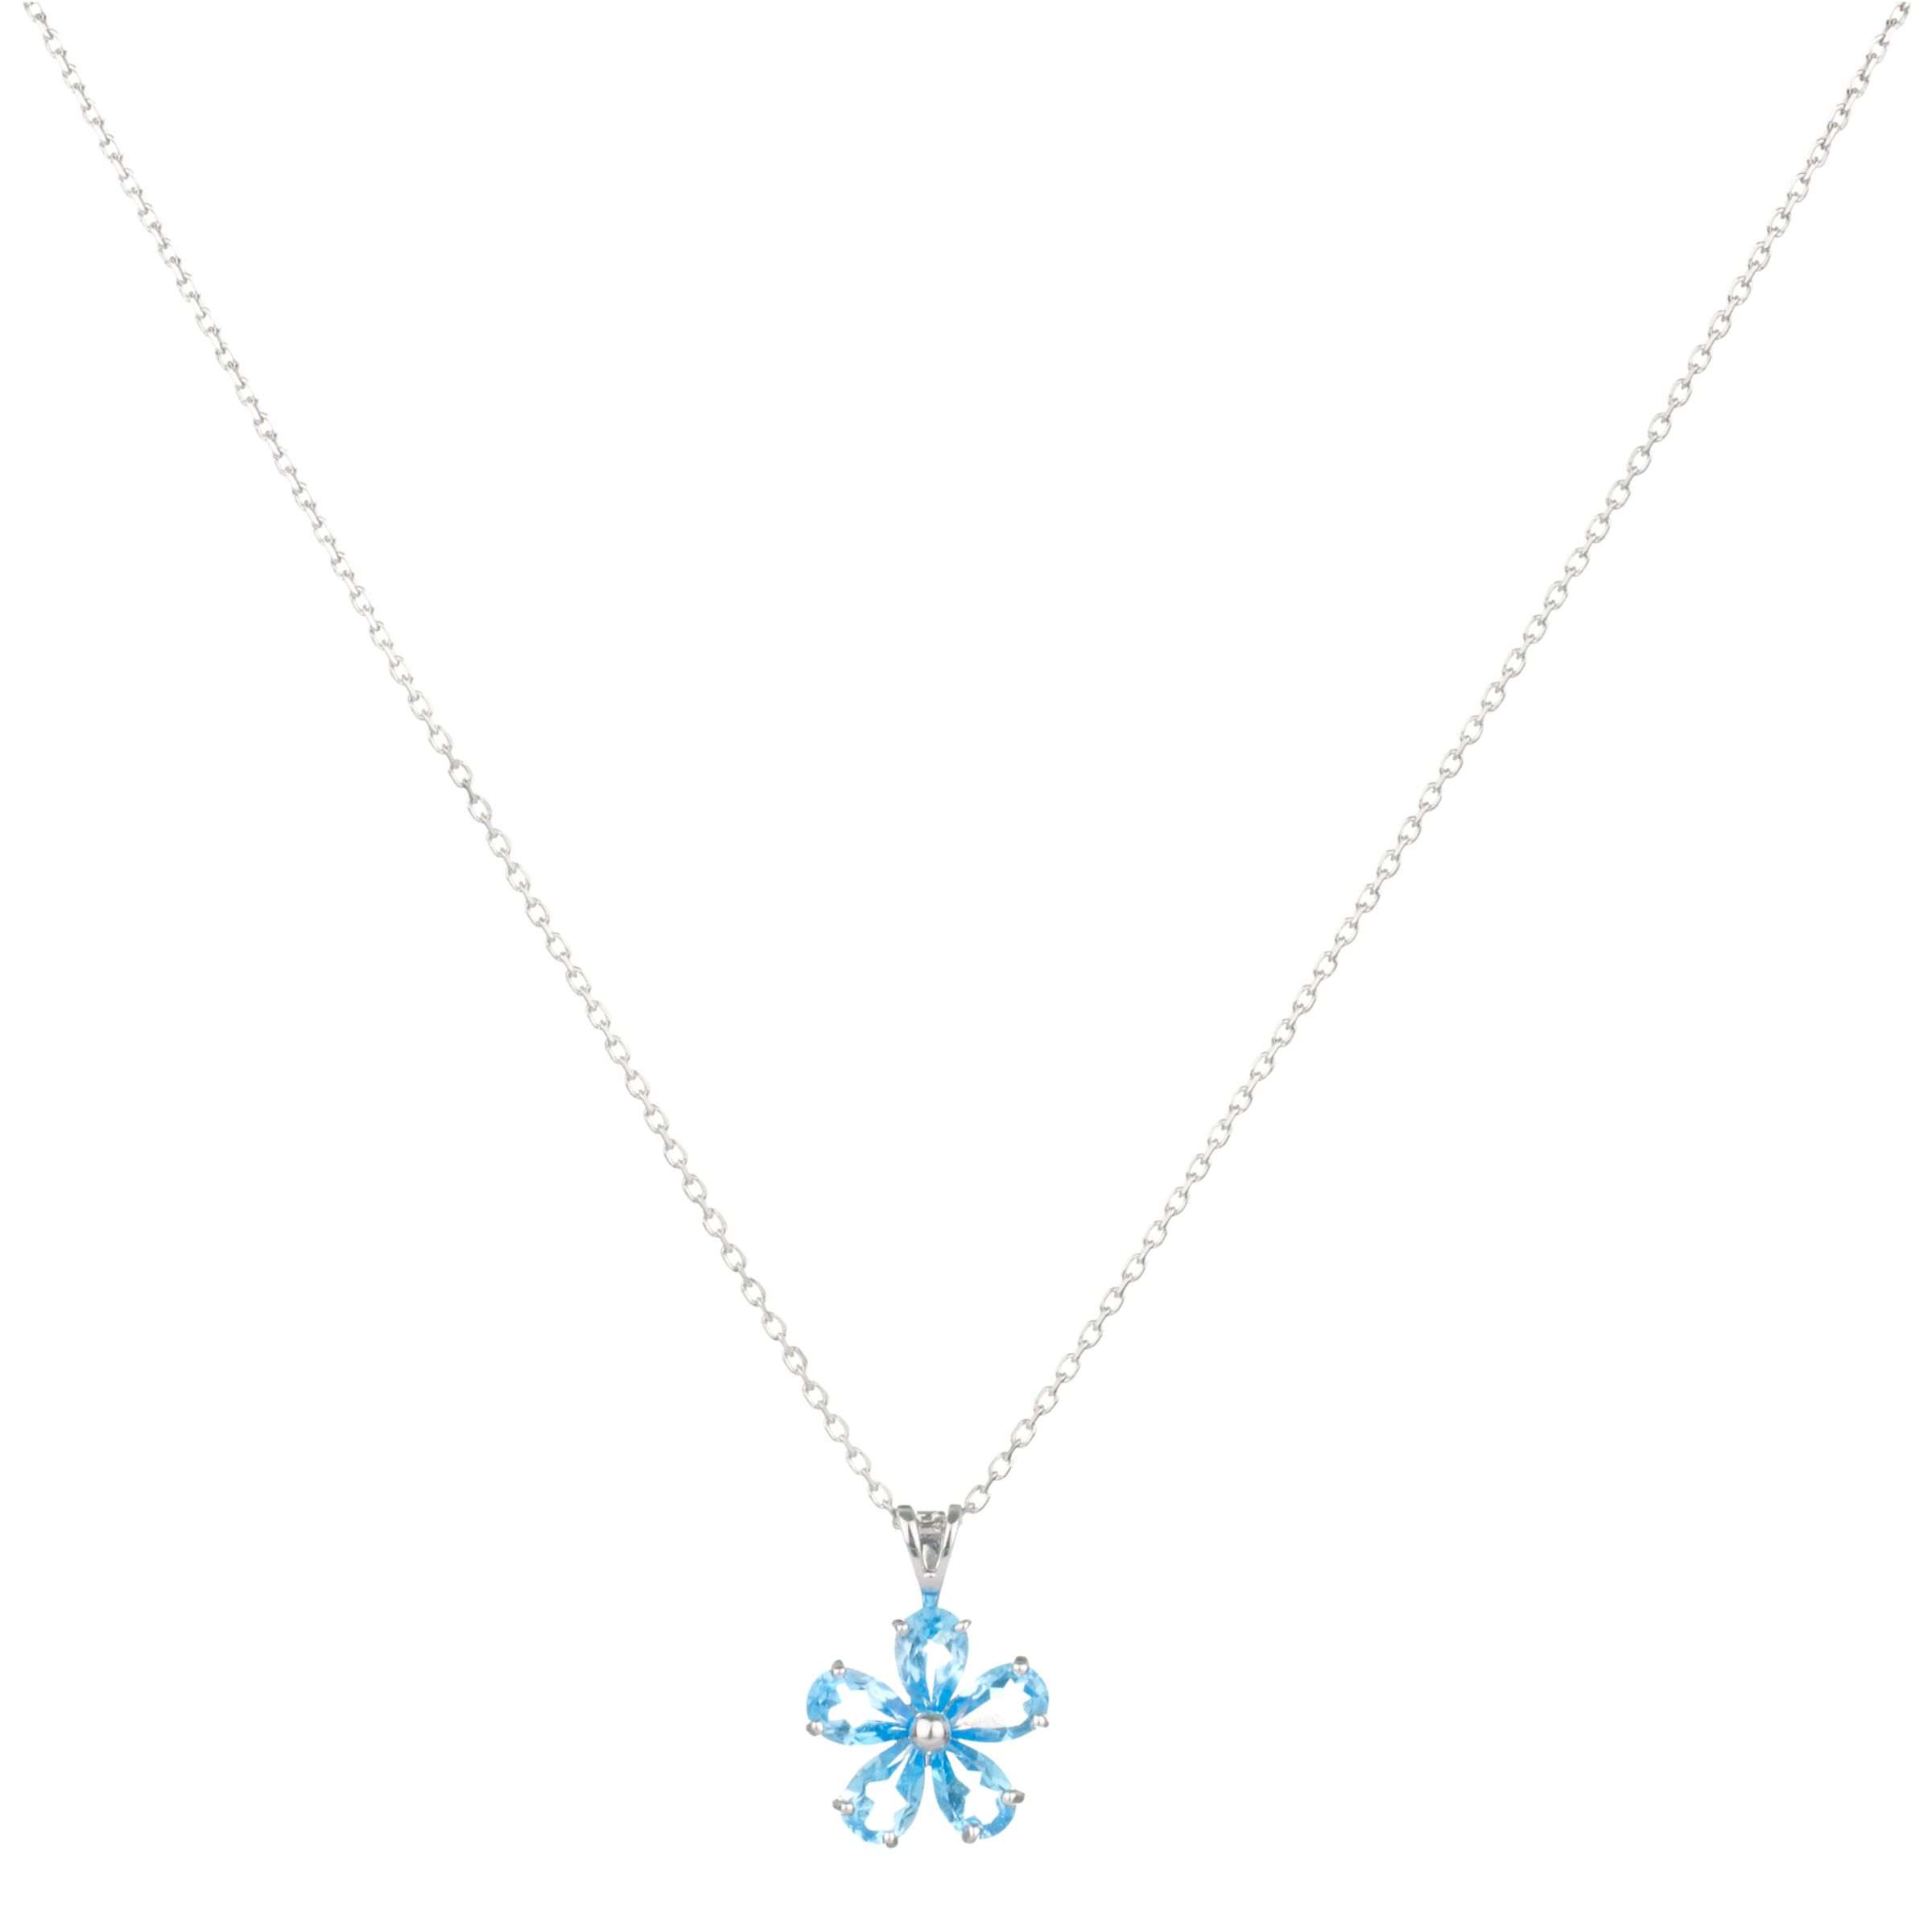 9ct White Gold Blue Topaz Daisy Flower Pendant Necklace